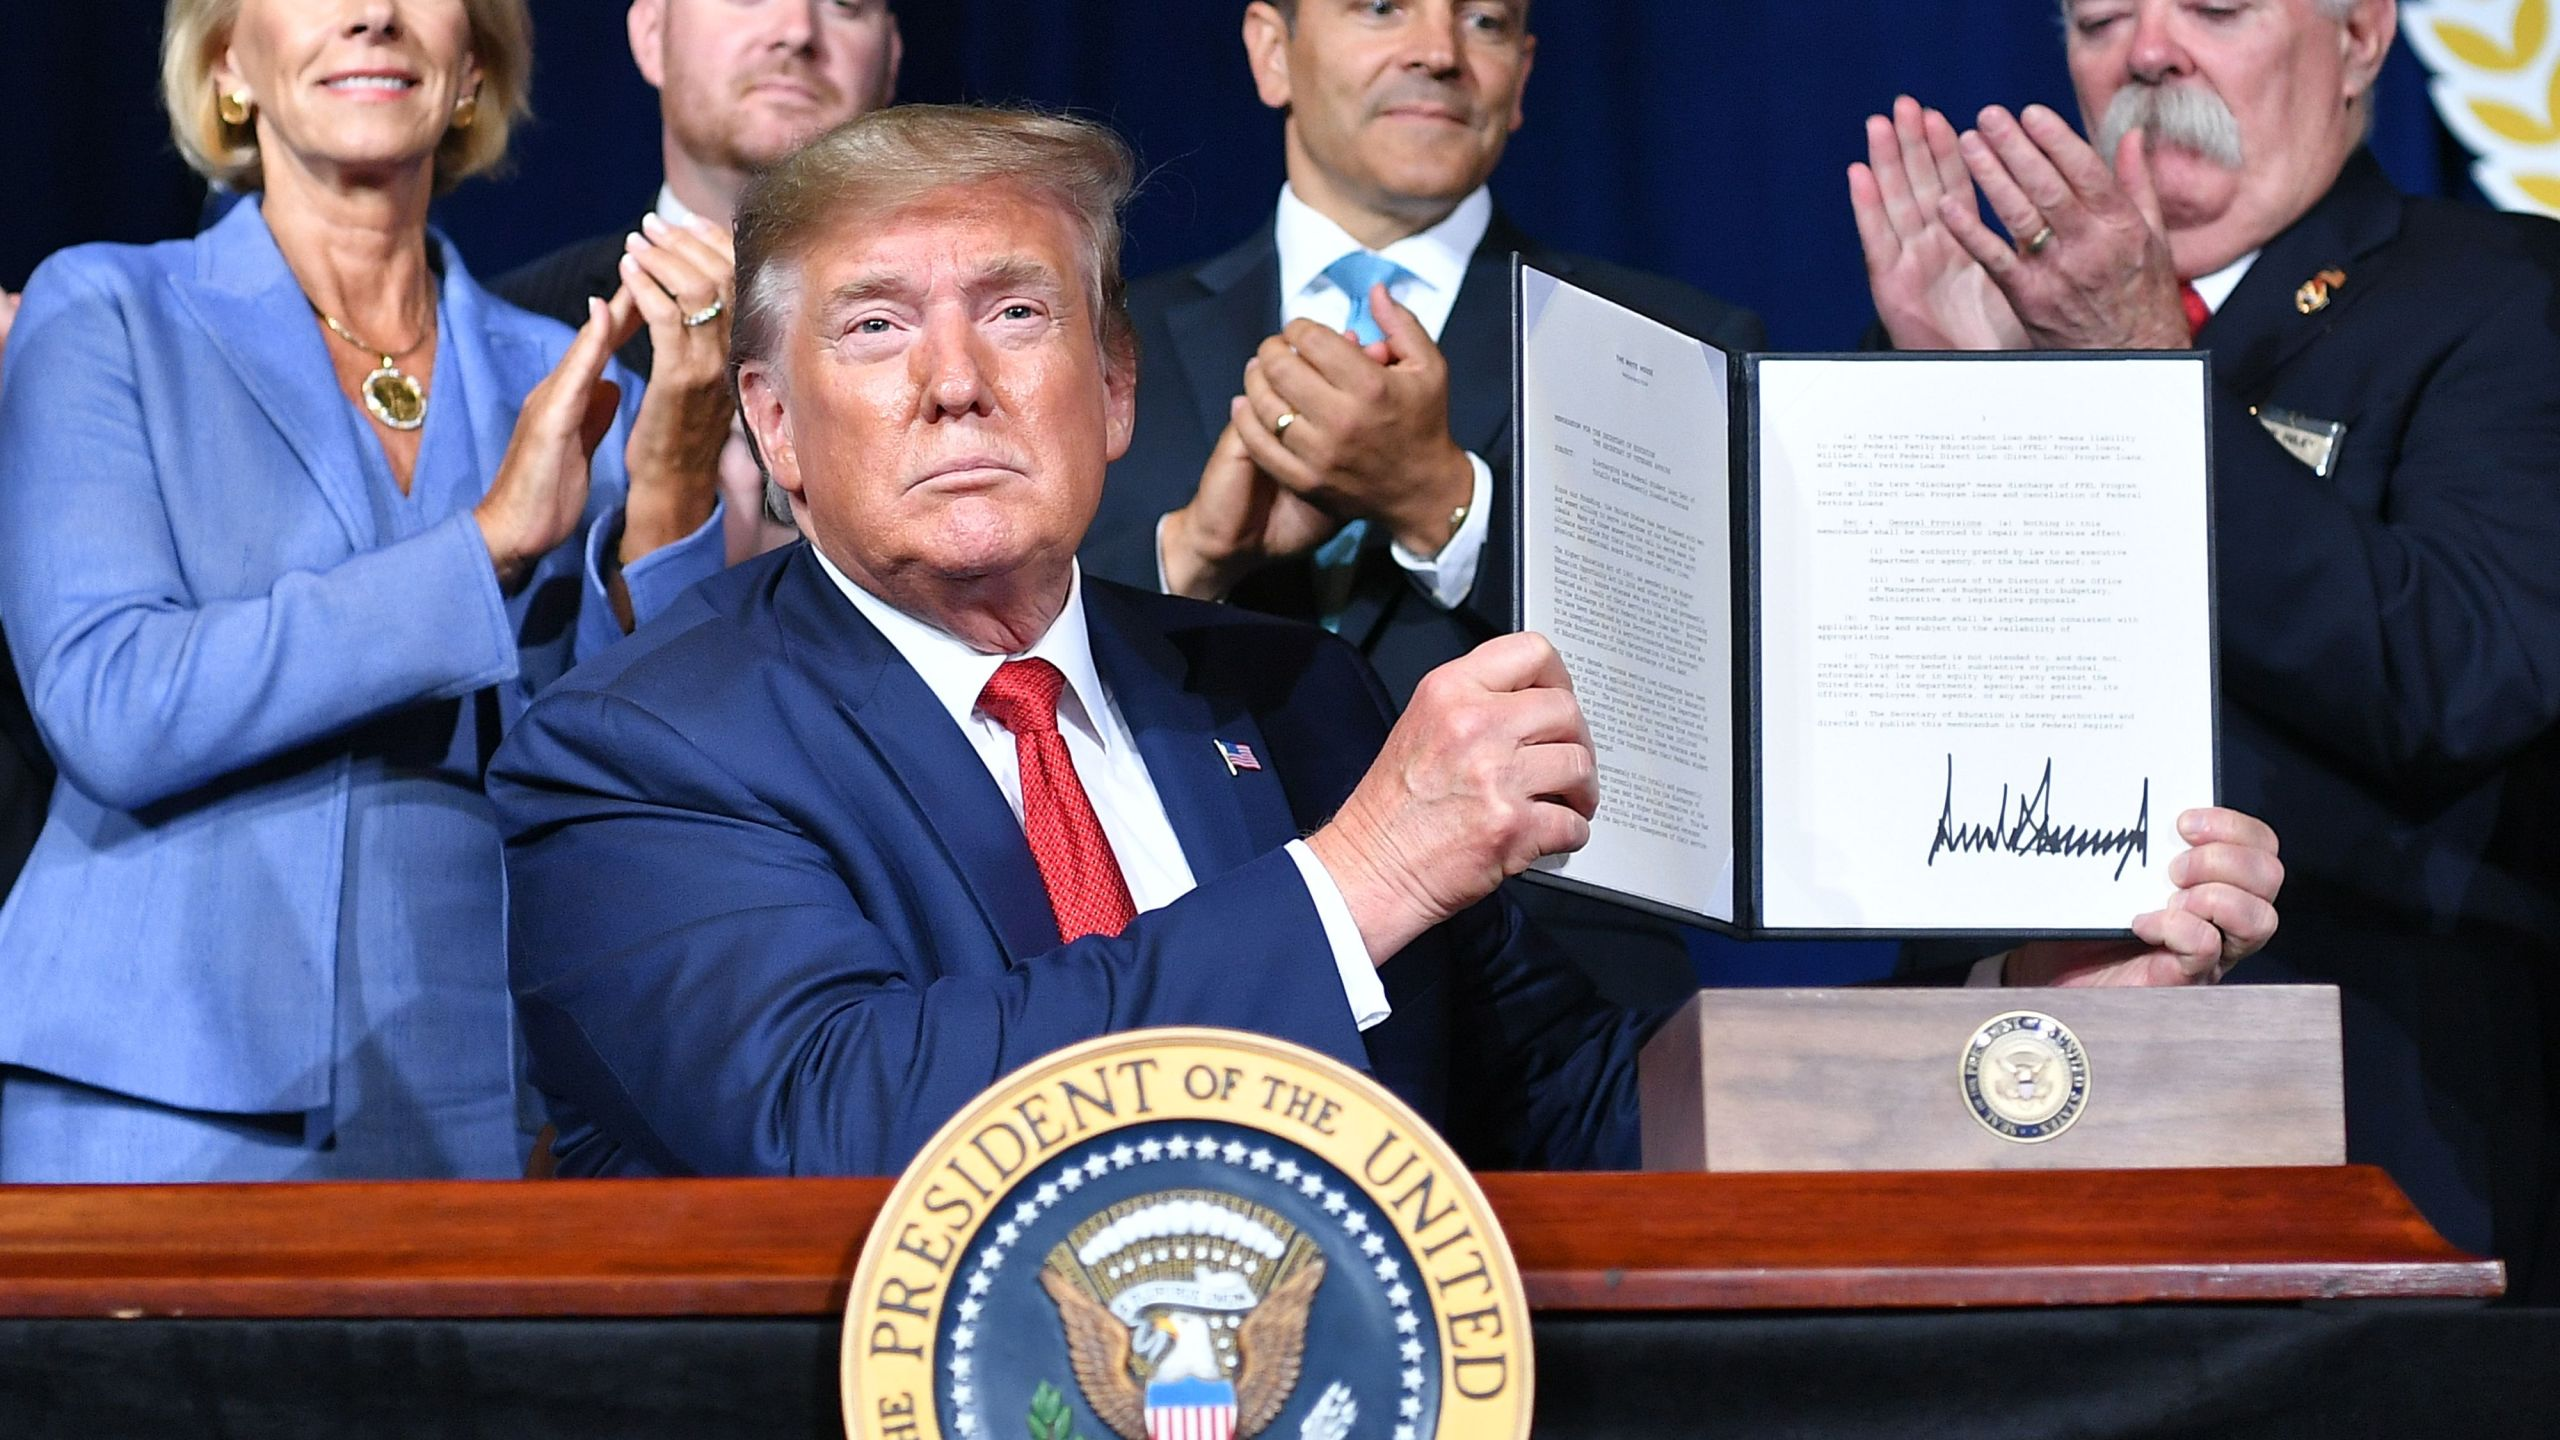 U.S. President Donald Trump signs a Presidential Memorandum on Discharging the Federal Student Loan Debt of Totally and Permanently Disabled Veterans, at the American Veterans (AMVETS) 75th National Convention in Louisville, Kentucky, on Aug. 21, 2019.(Credit: MANDEL NGAN/AFP/Getty Images)